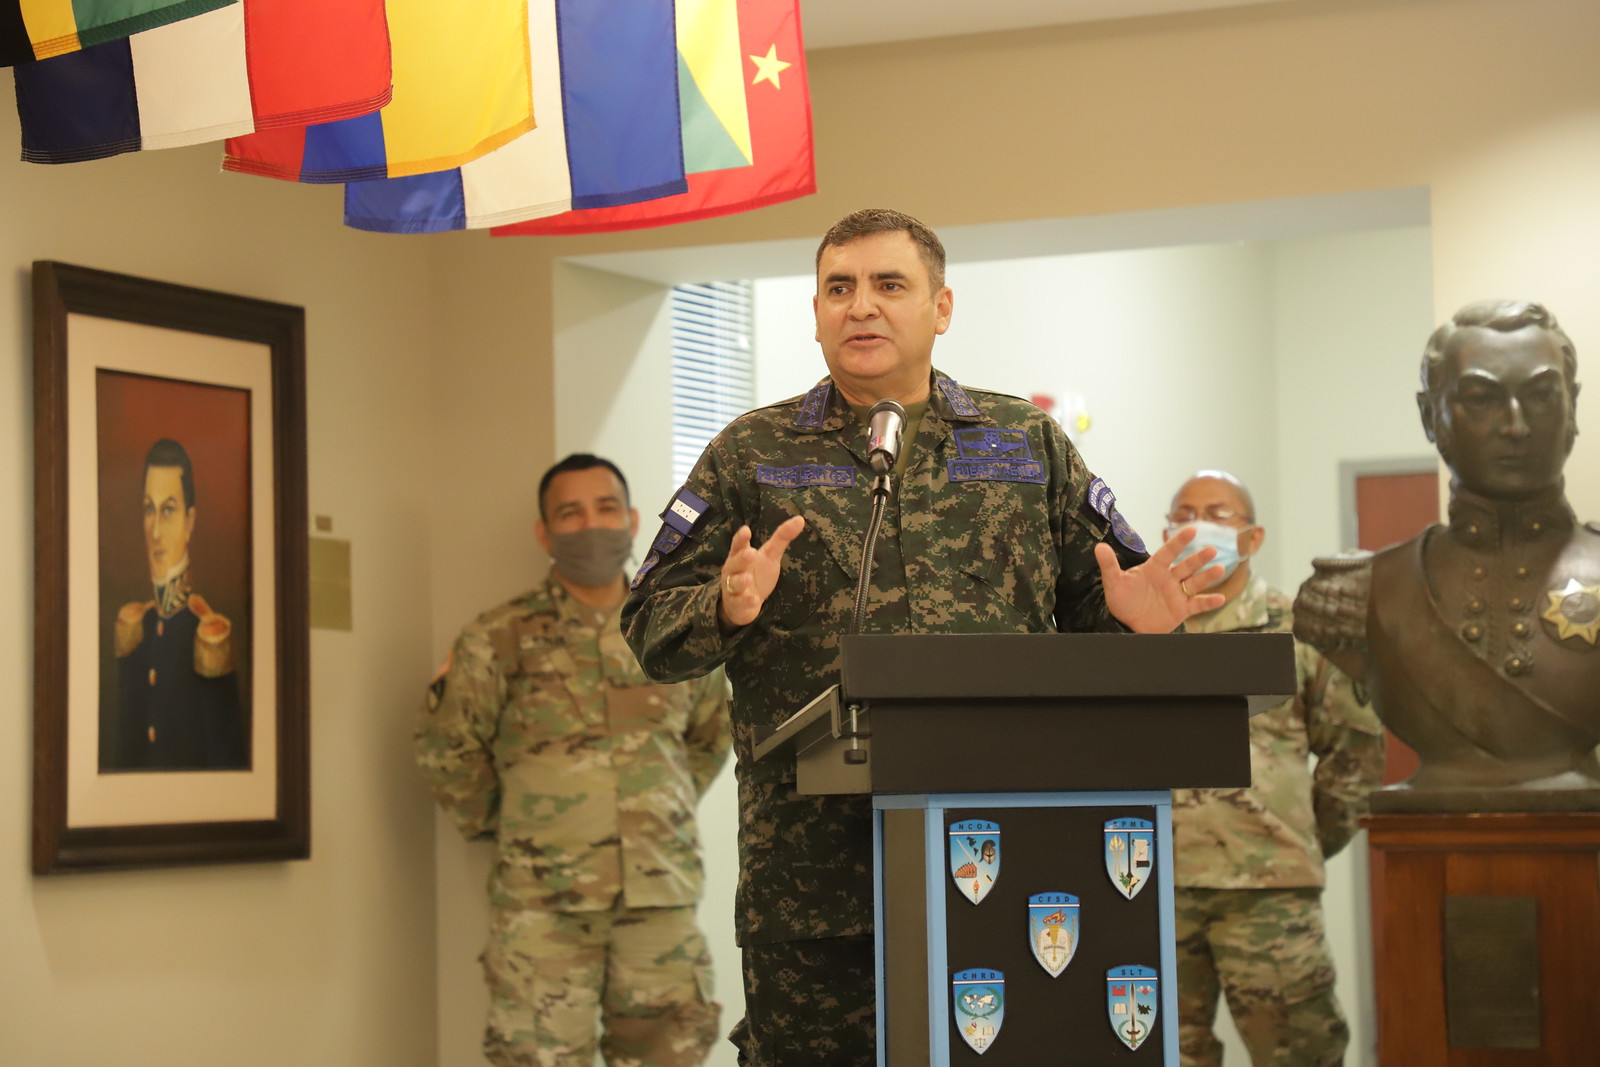 Honduran Air Force Commander Inducted into WHINSEC Hall of Fame